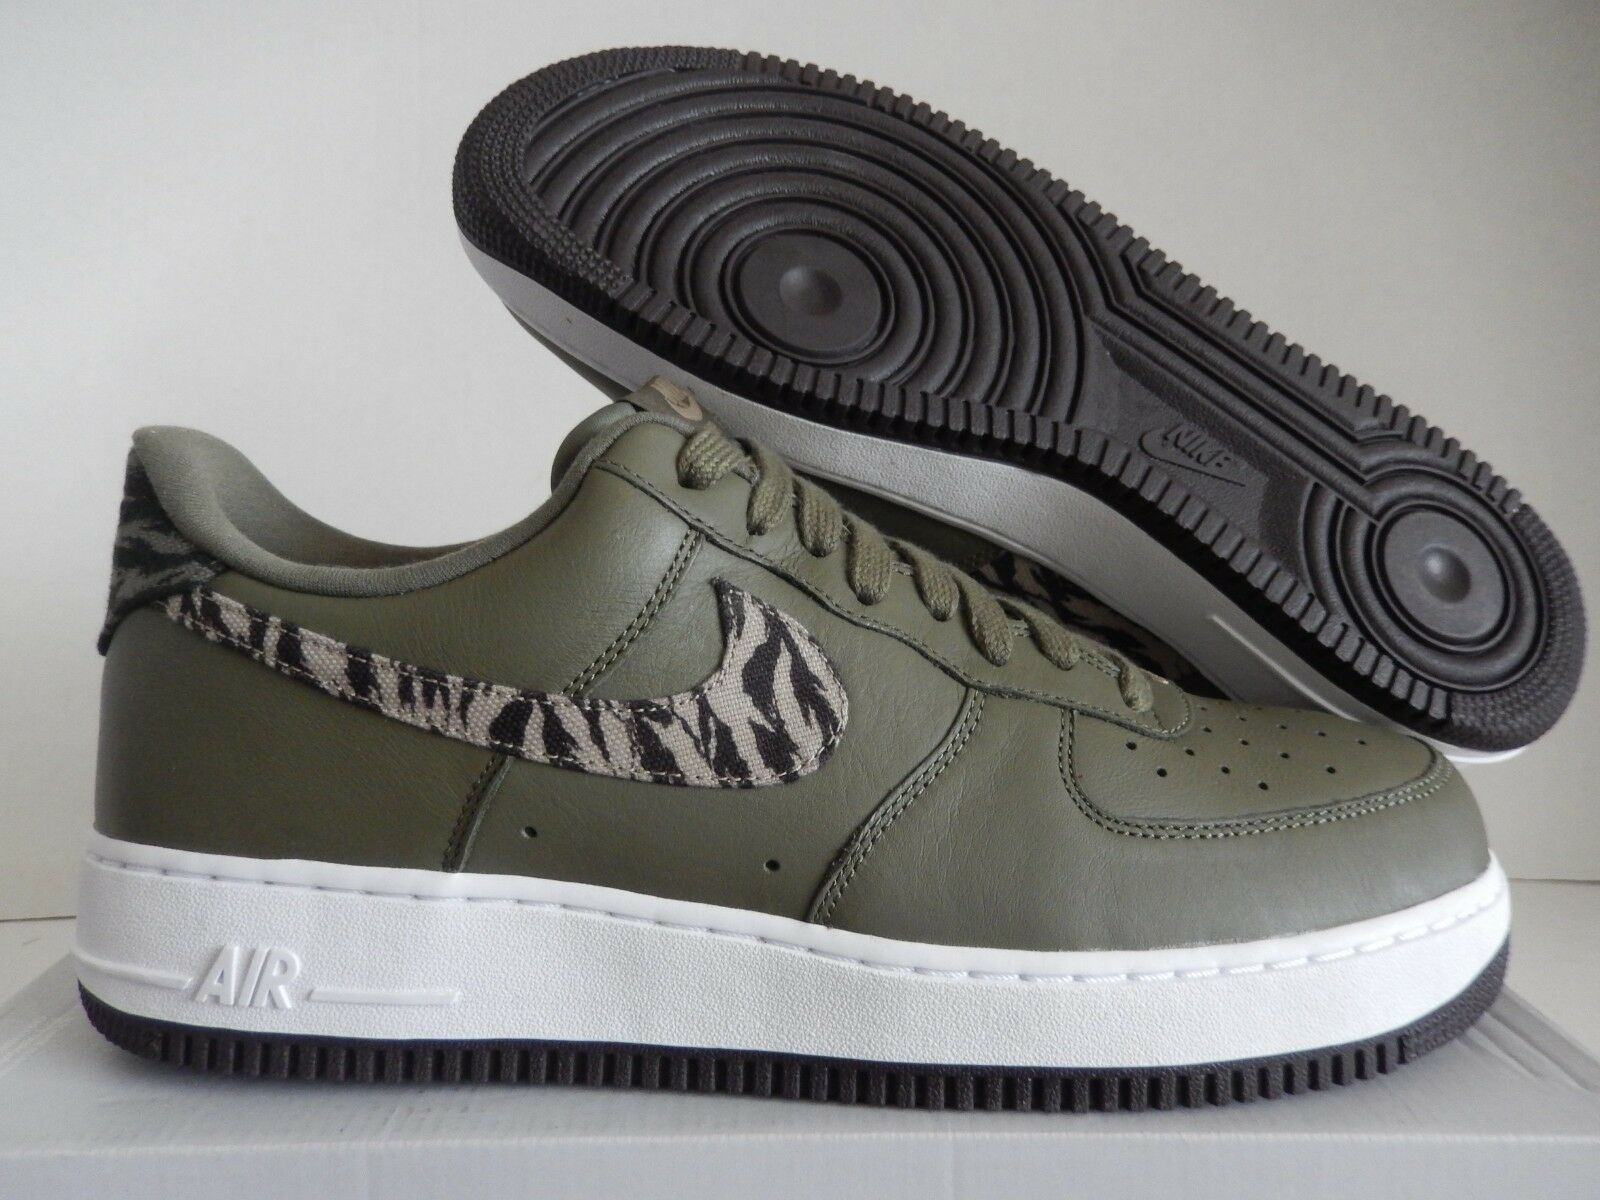 NIKE AIR FORCE 1 AOP PREMIUM  TIGER CAMO  MEDIUM OLIVE GREEN SZ 13 [AQ4131-200]